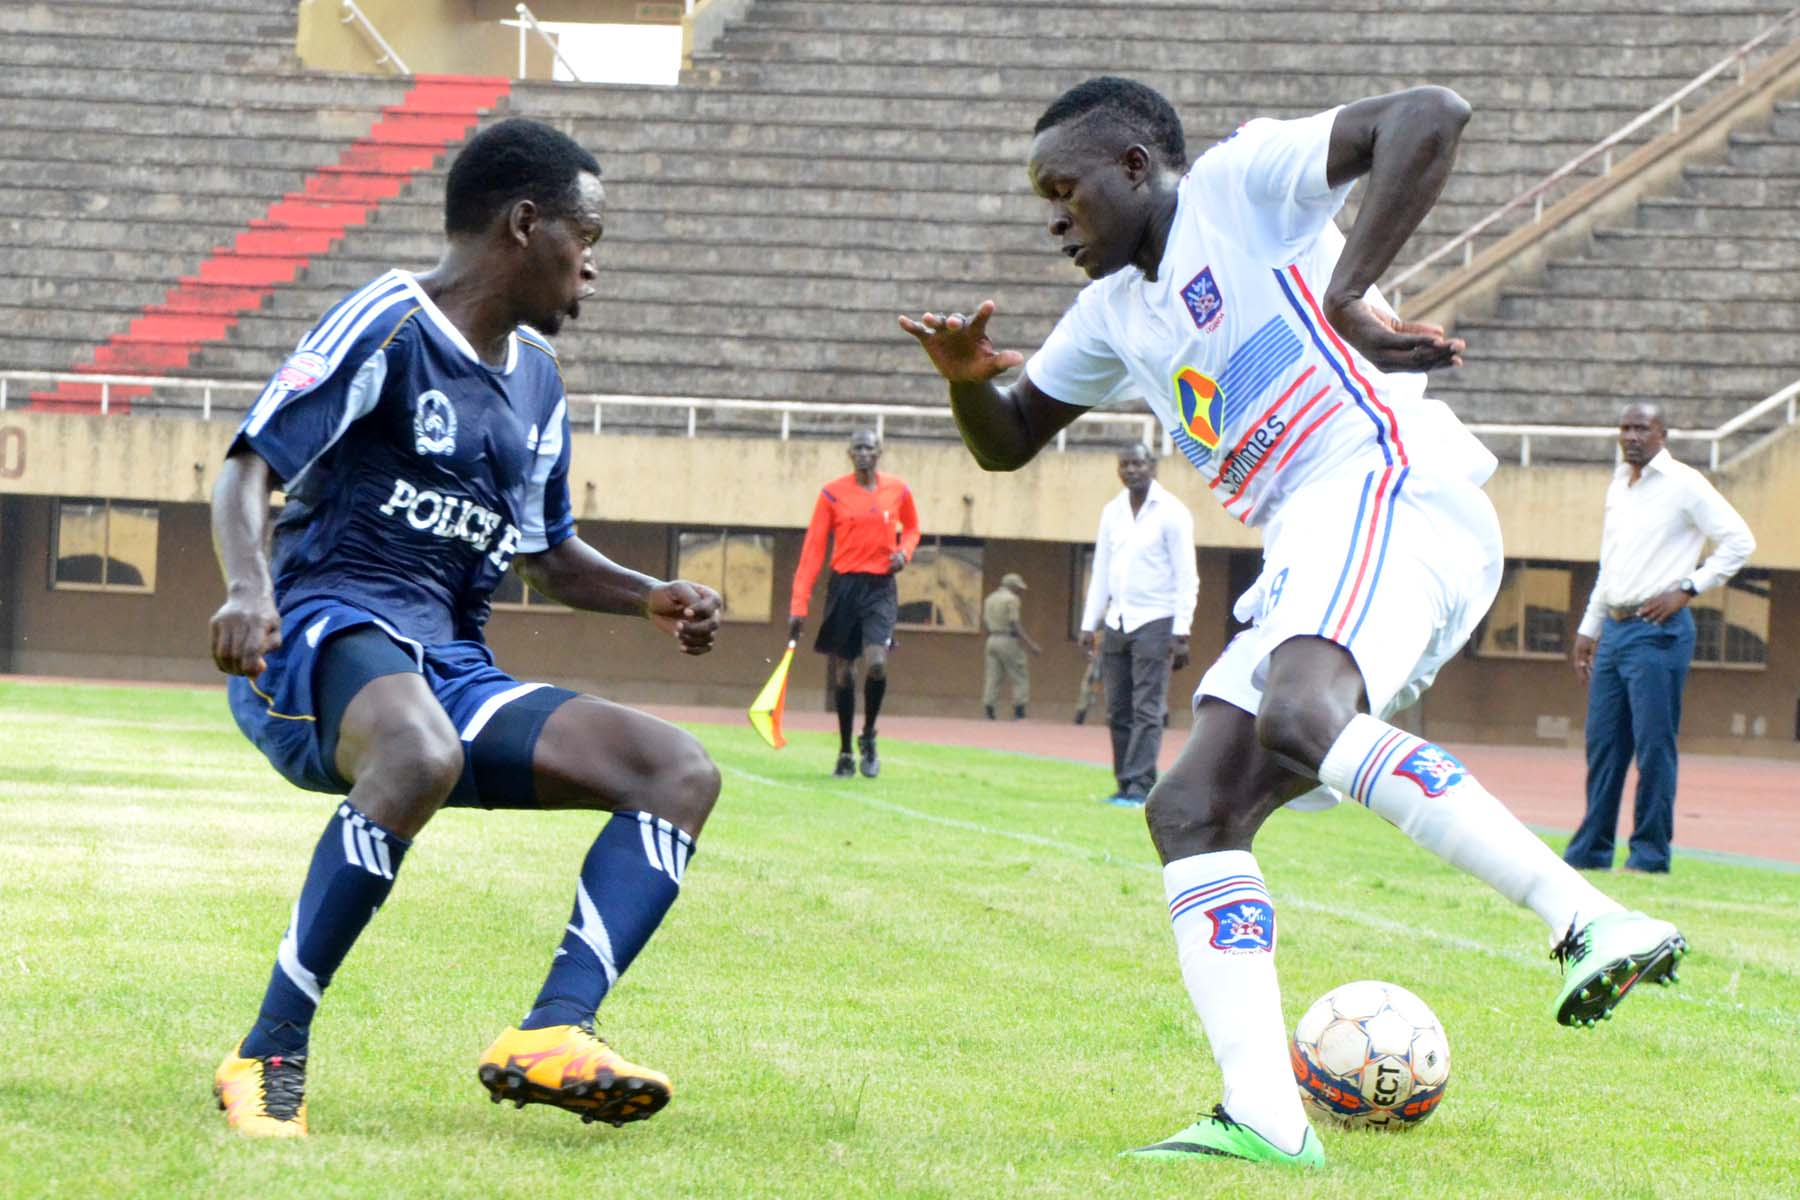 Police v SC Villa in action